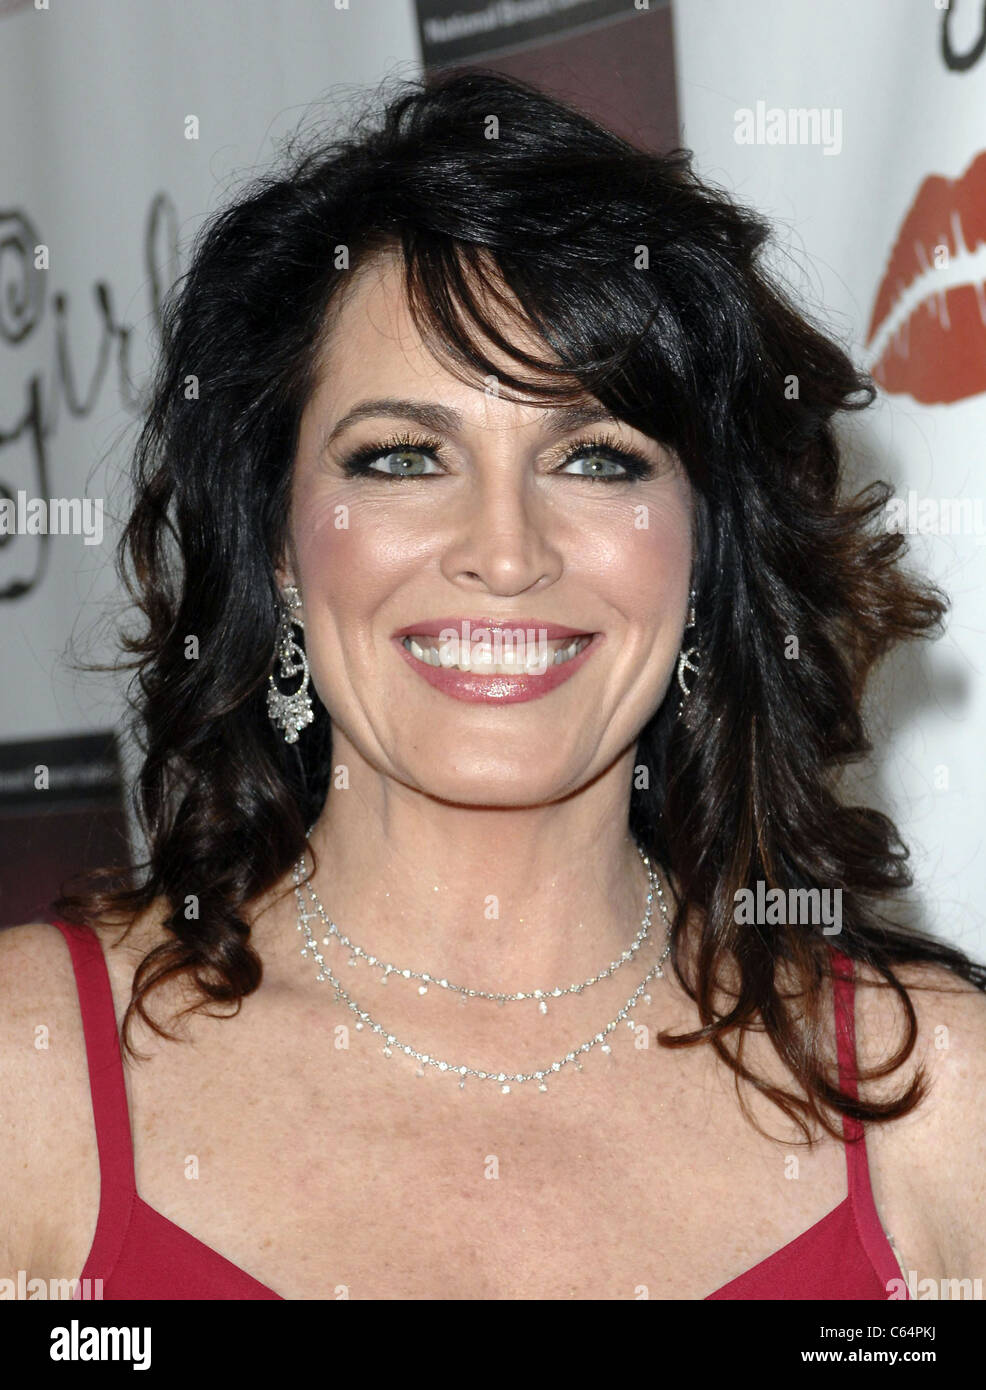 Cynthia sikes at arrivals for les girls tawdry 10th annual for Cynthia marin